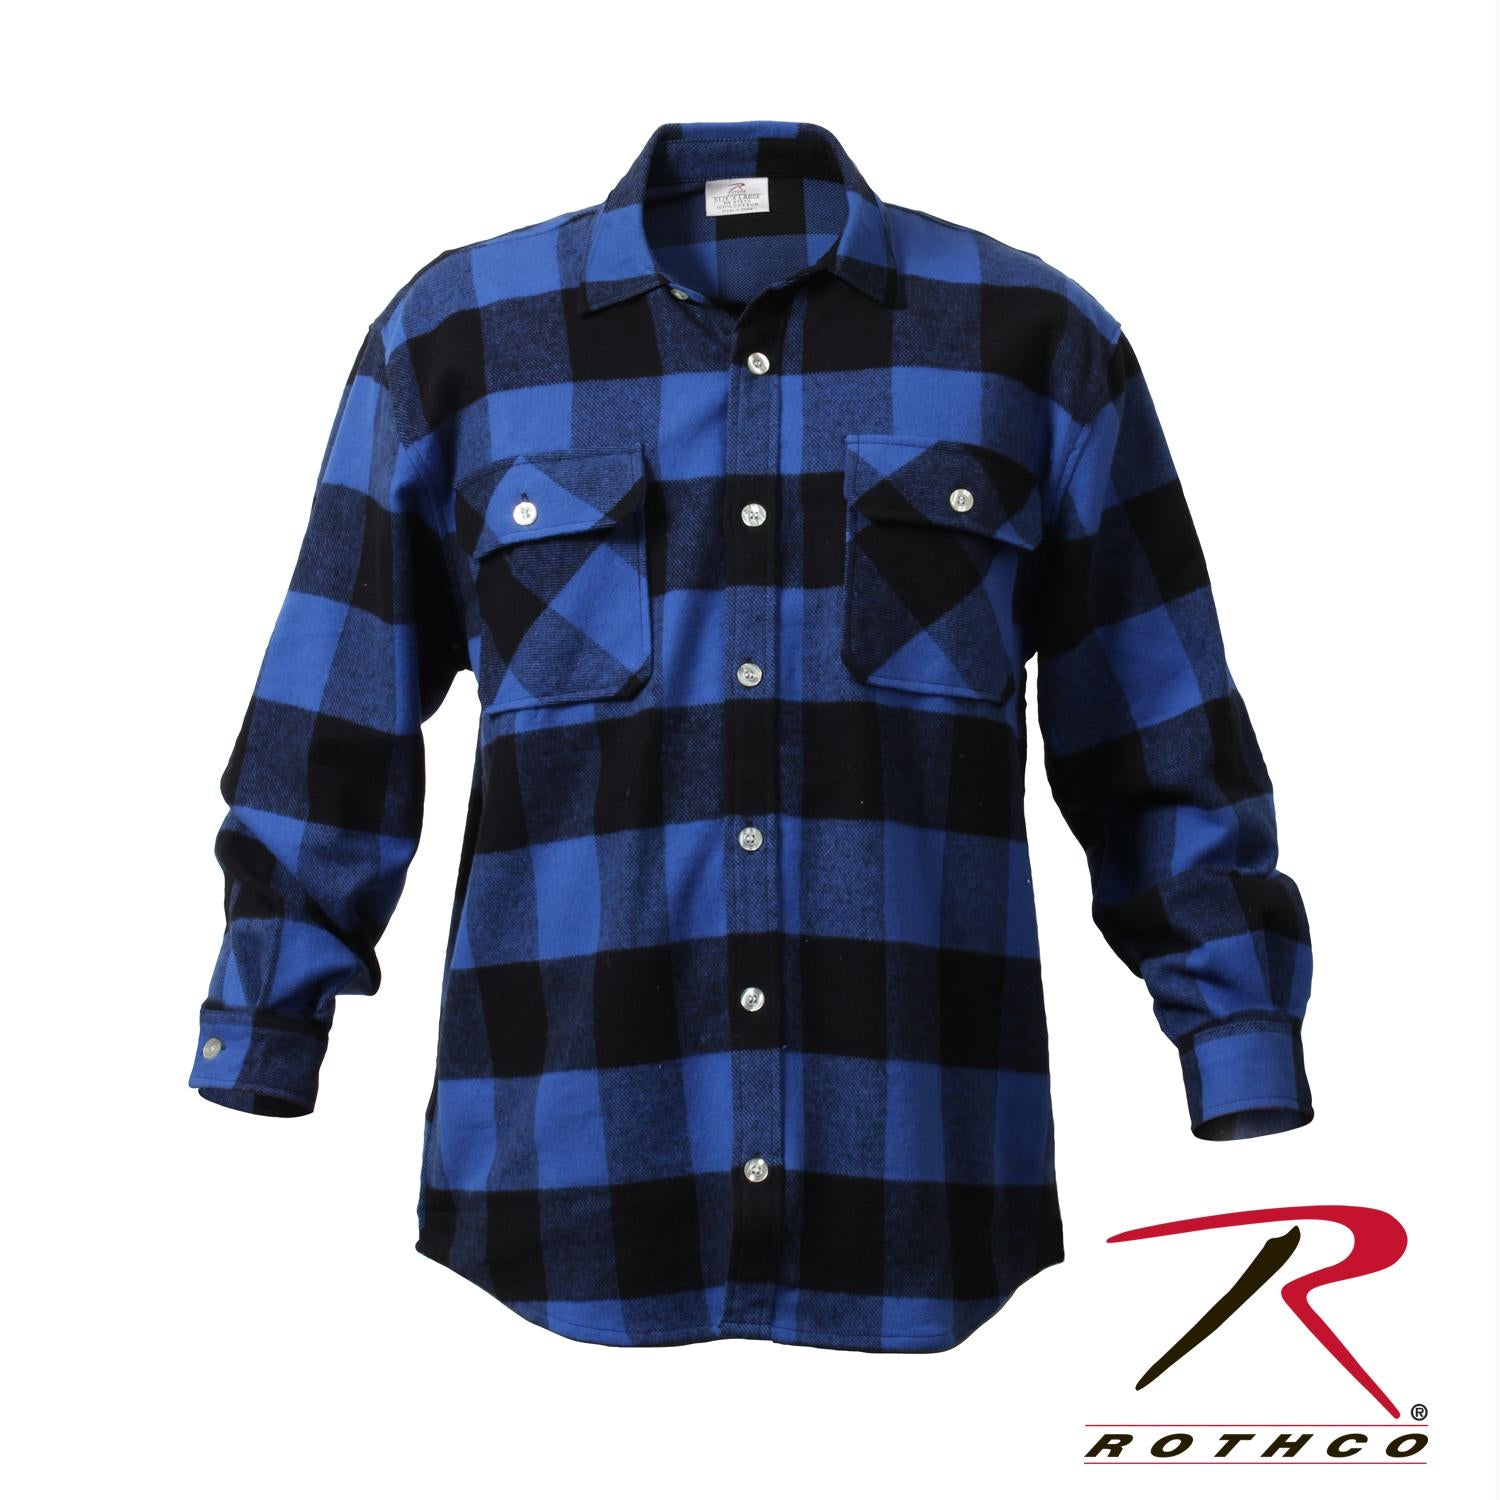 Rothco Extra Heavyweight Buffalo Plaid Flannel Shirts - Blue Plaid / 5XL